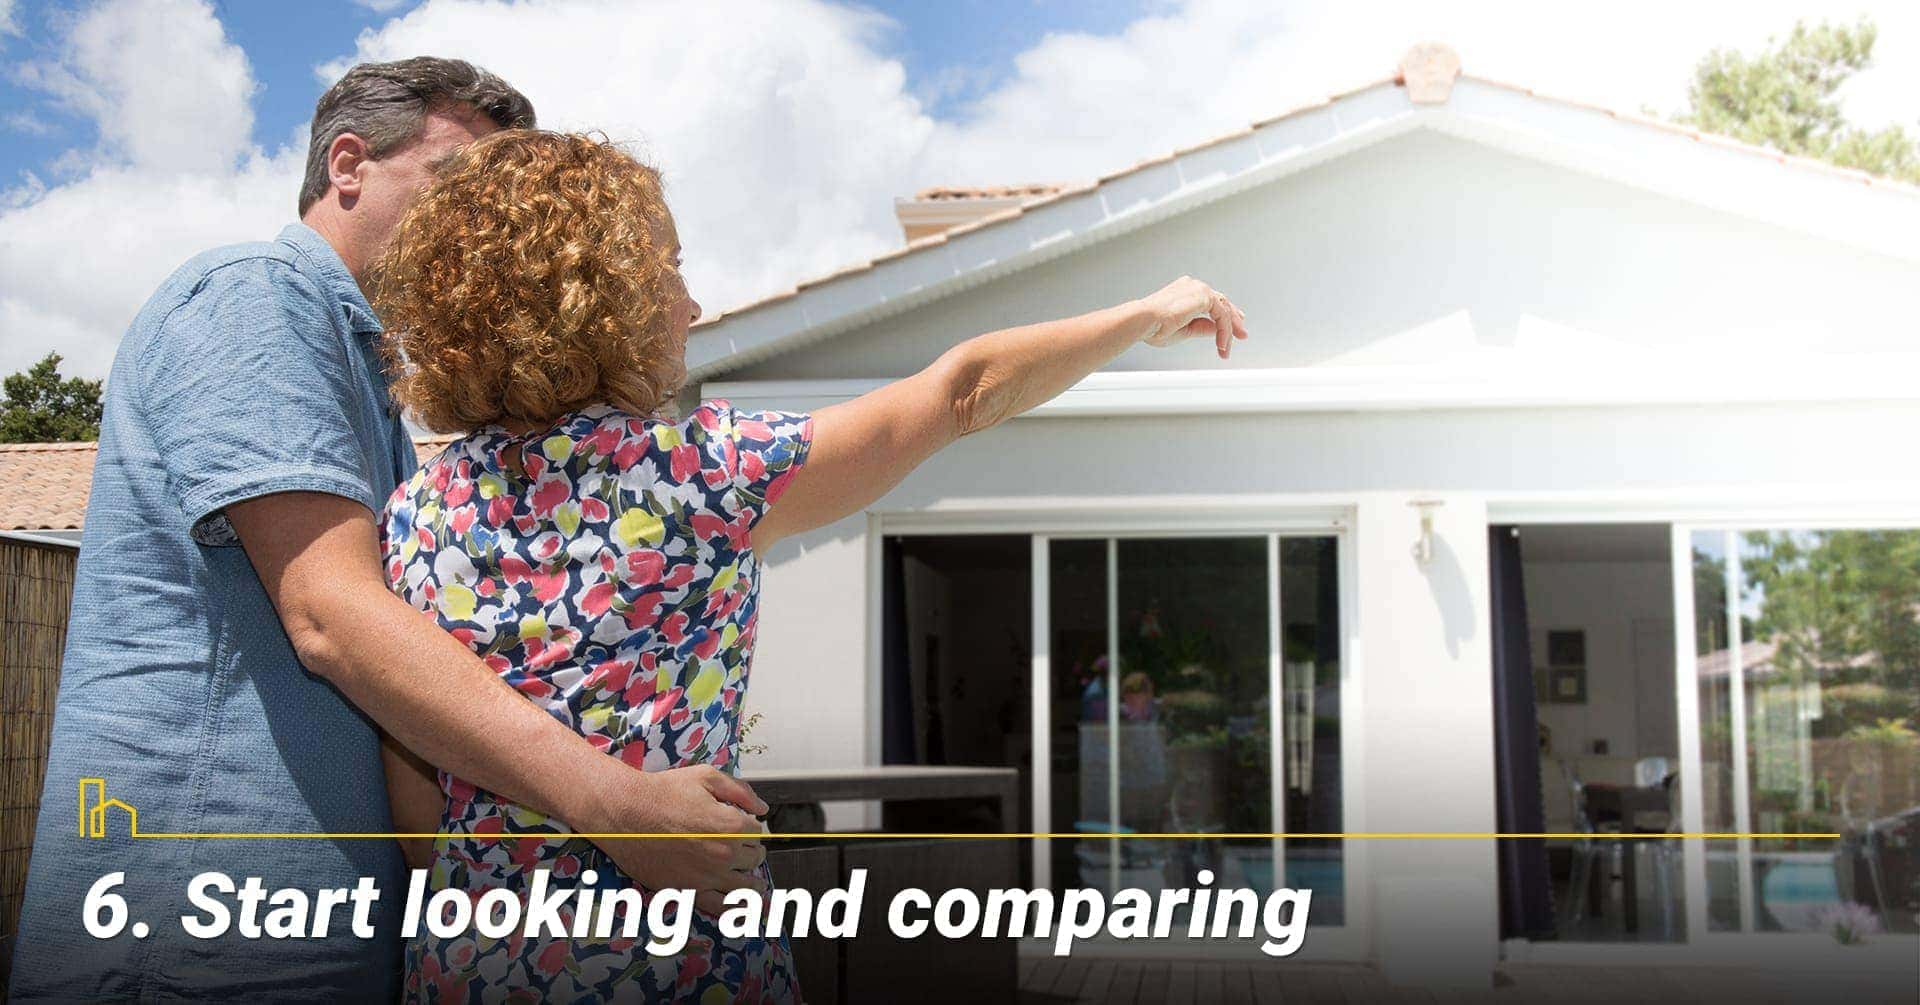 Start looking and comparing, compare properties